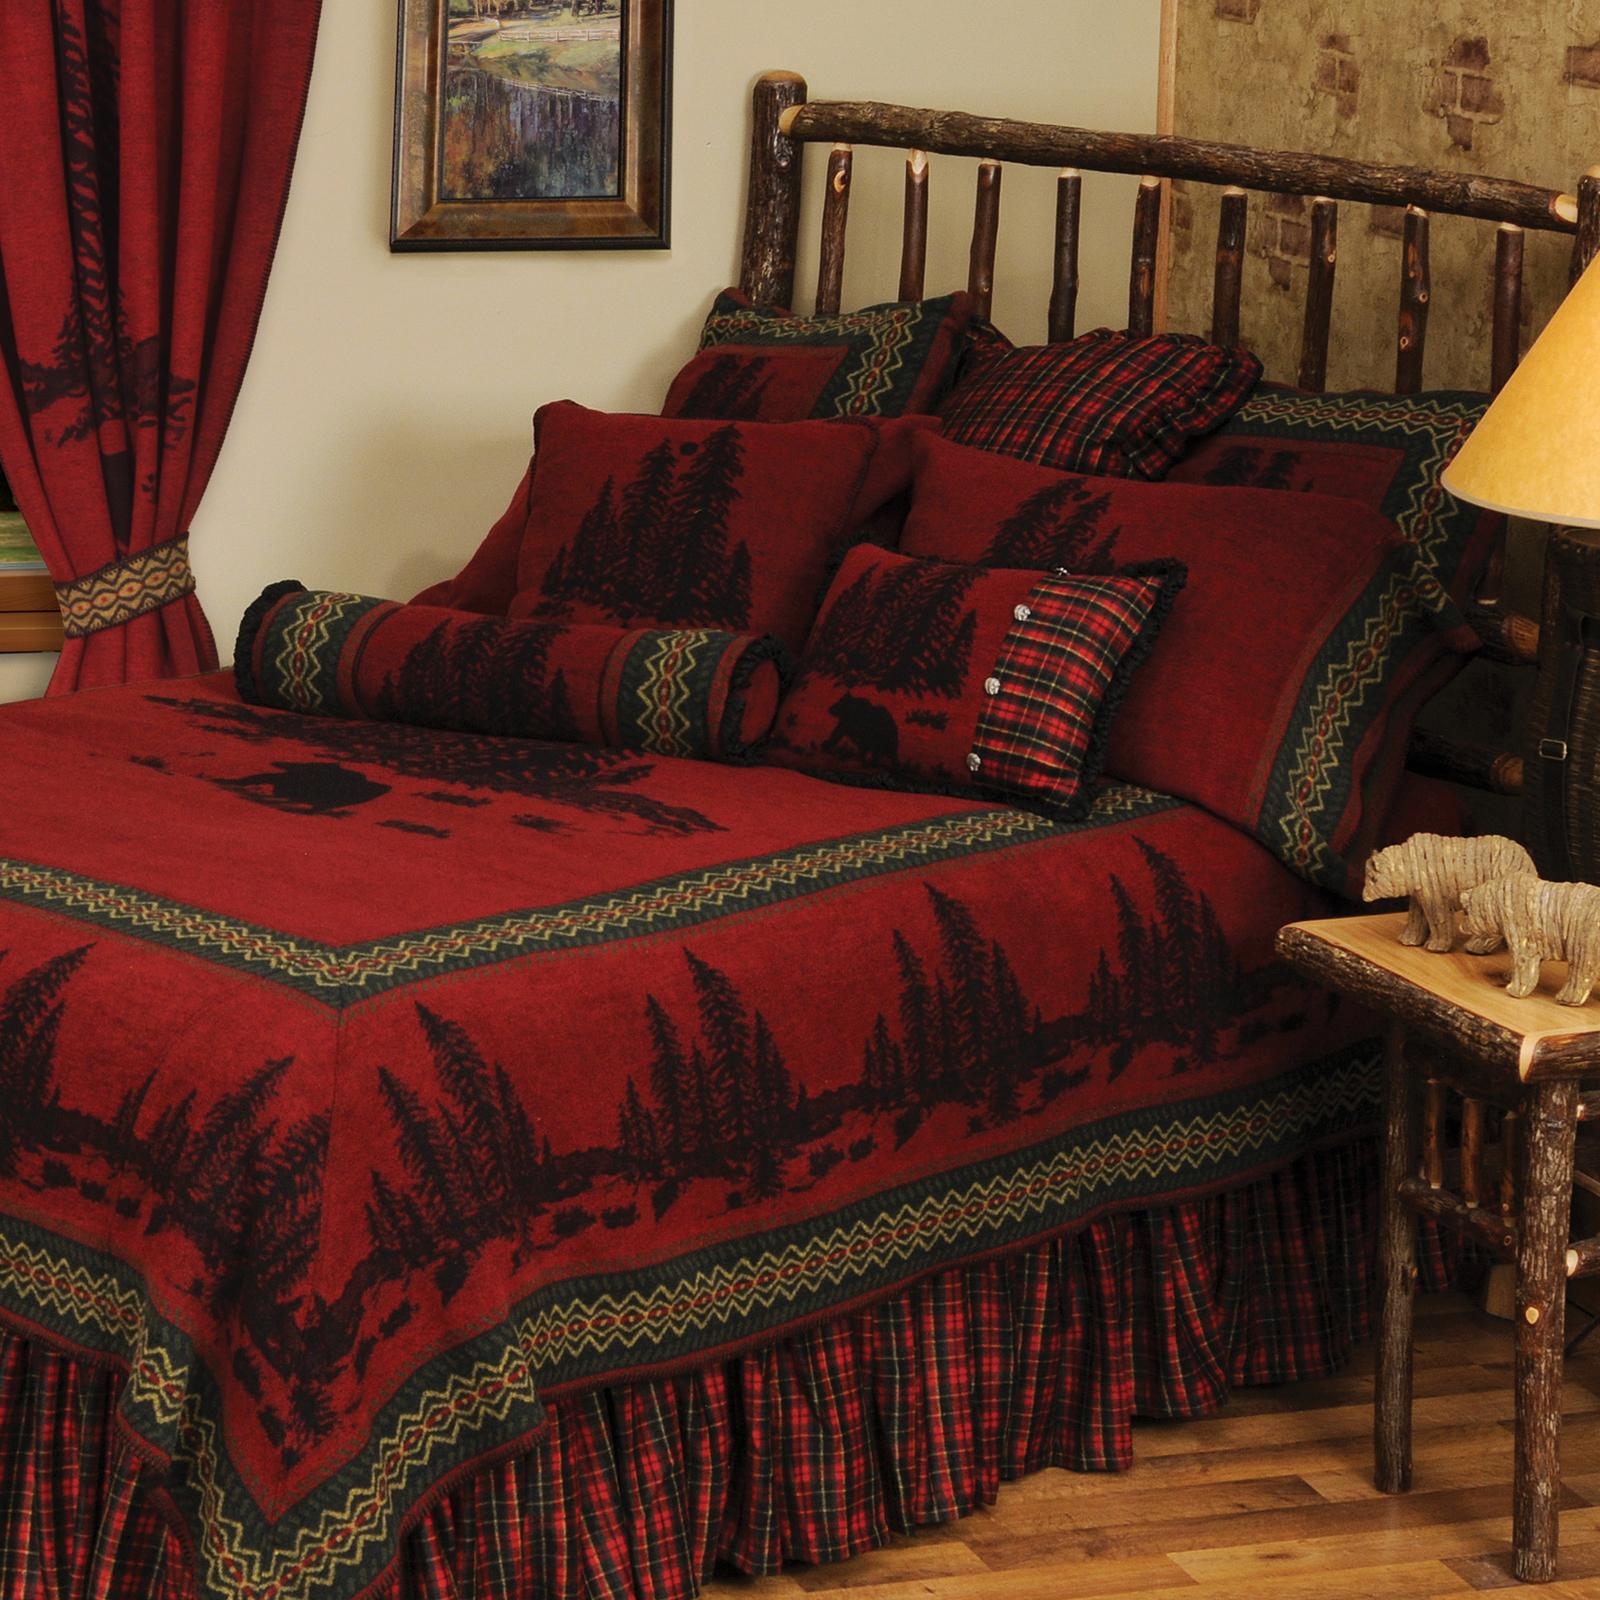 Wooded River Bear Bedding Set by Wooded River - WDSQ2058